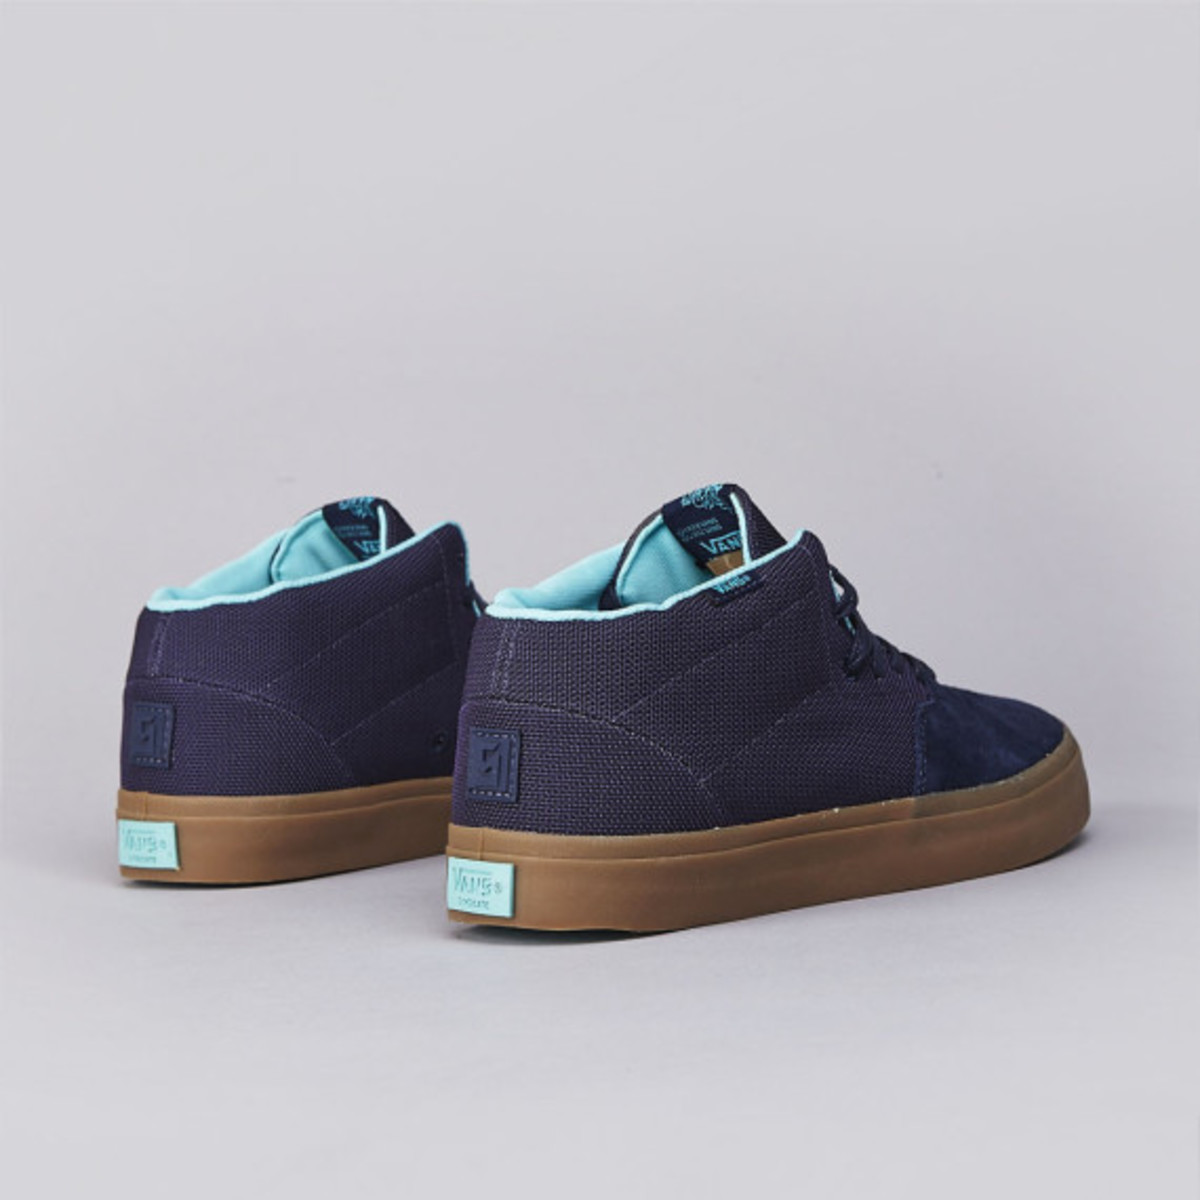 "VANS Syndicate Cab Lite ""S"" - June 2013 Releases - 9"